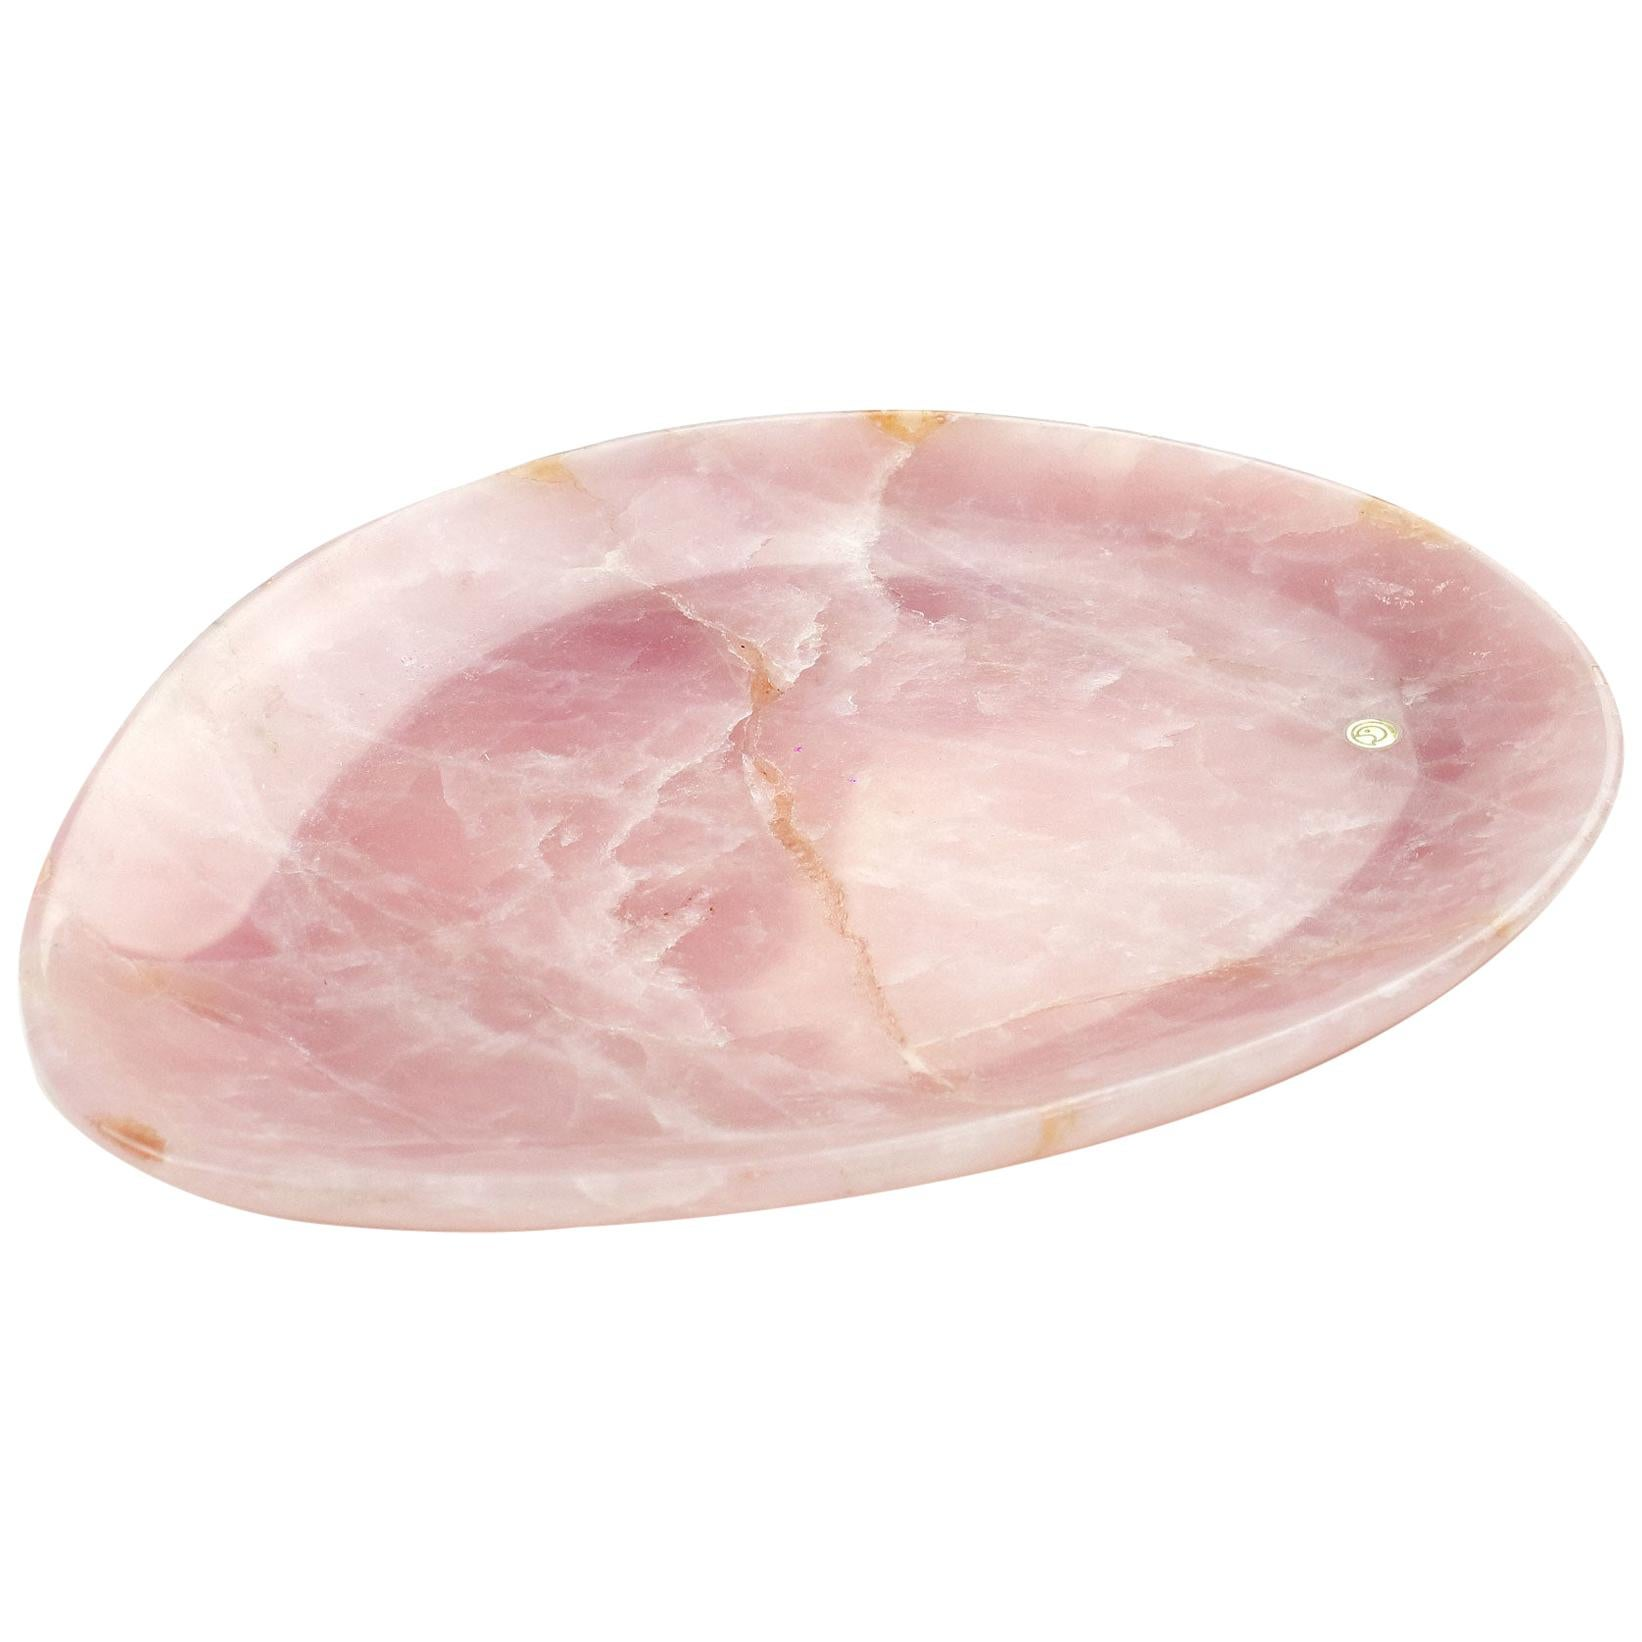 Handmade Plate in Solid Rose Quartz Contemporary Design by Pieruga Marble, Italy